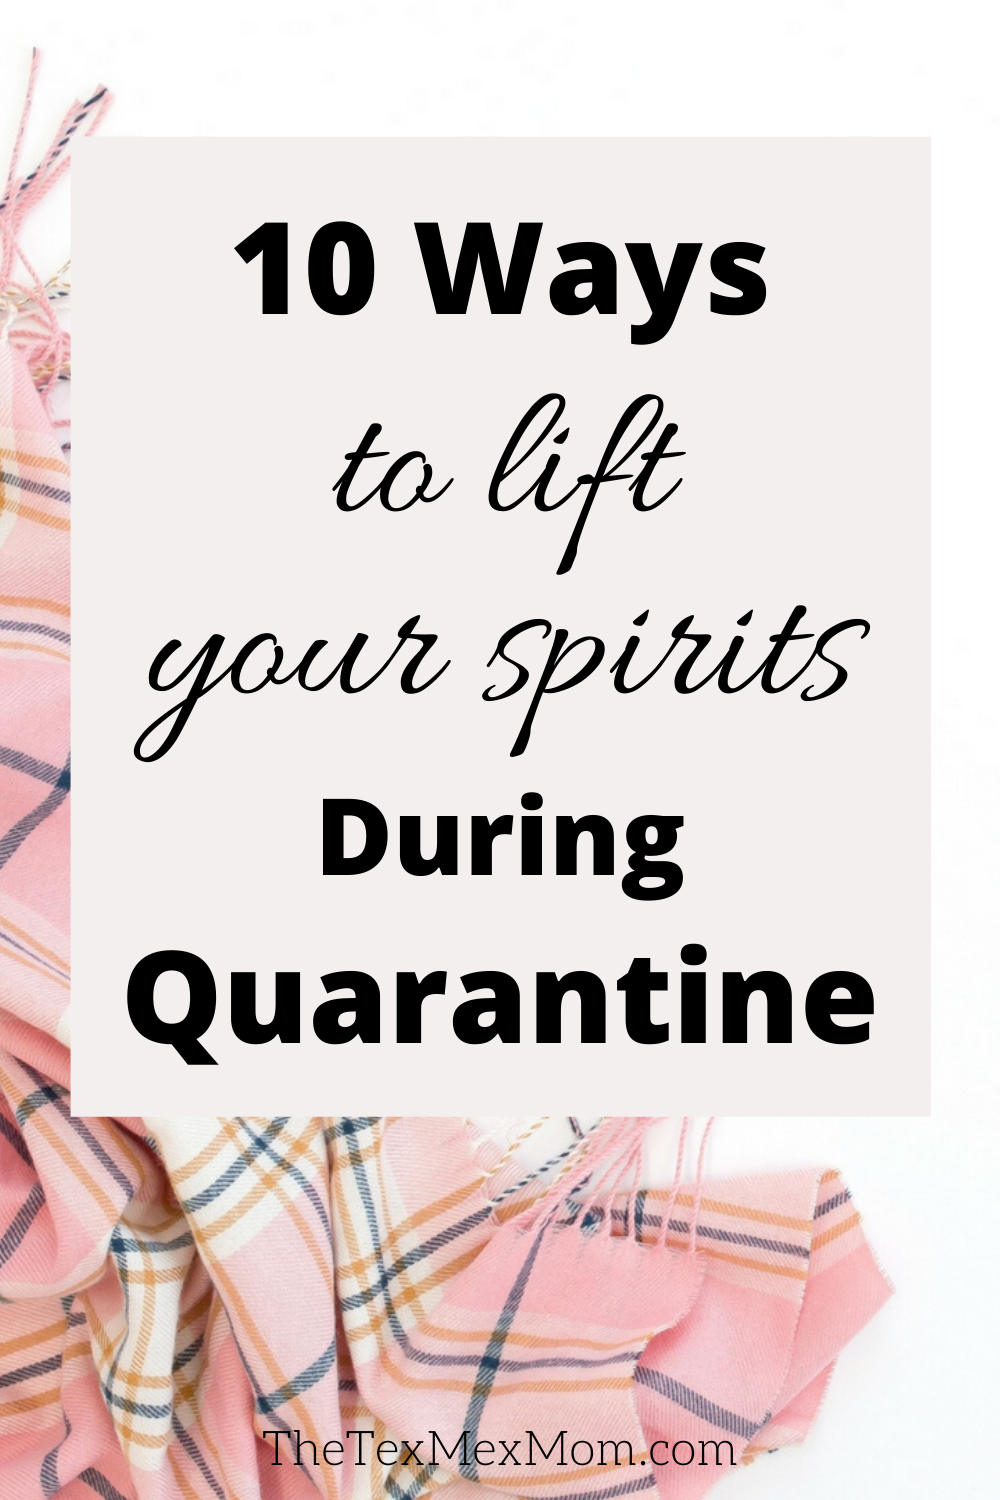 10 Ways to lift your spirits during quarantine